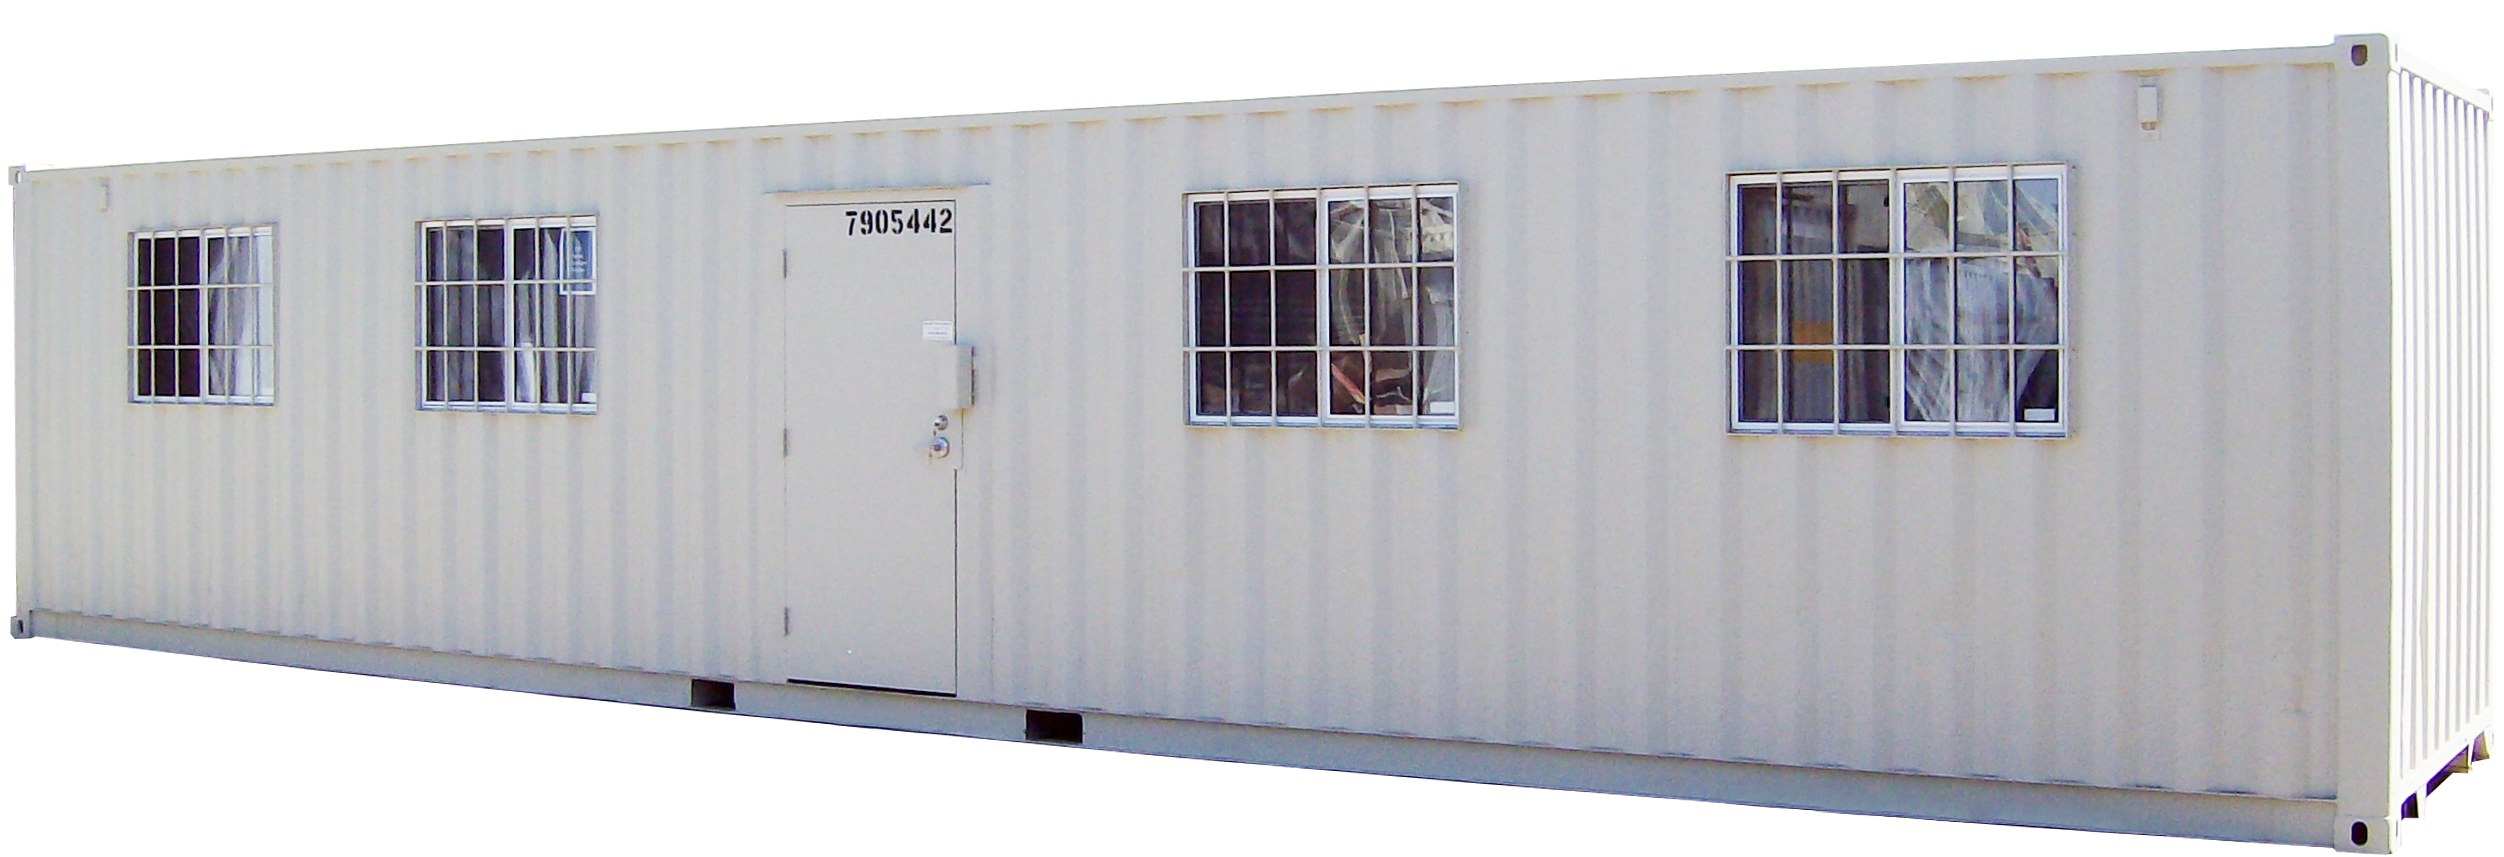 Double-Wide Mobile Office Trailer